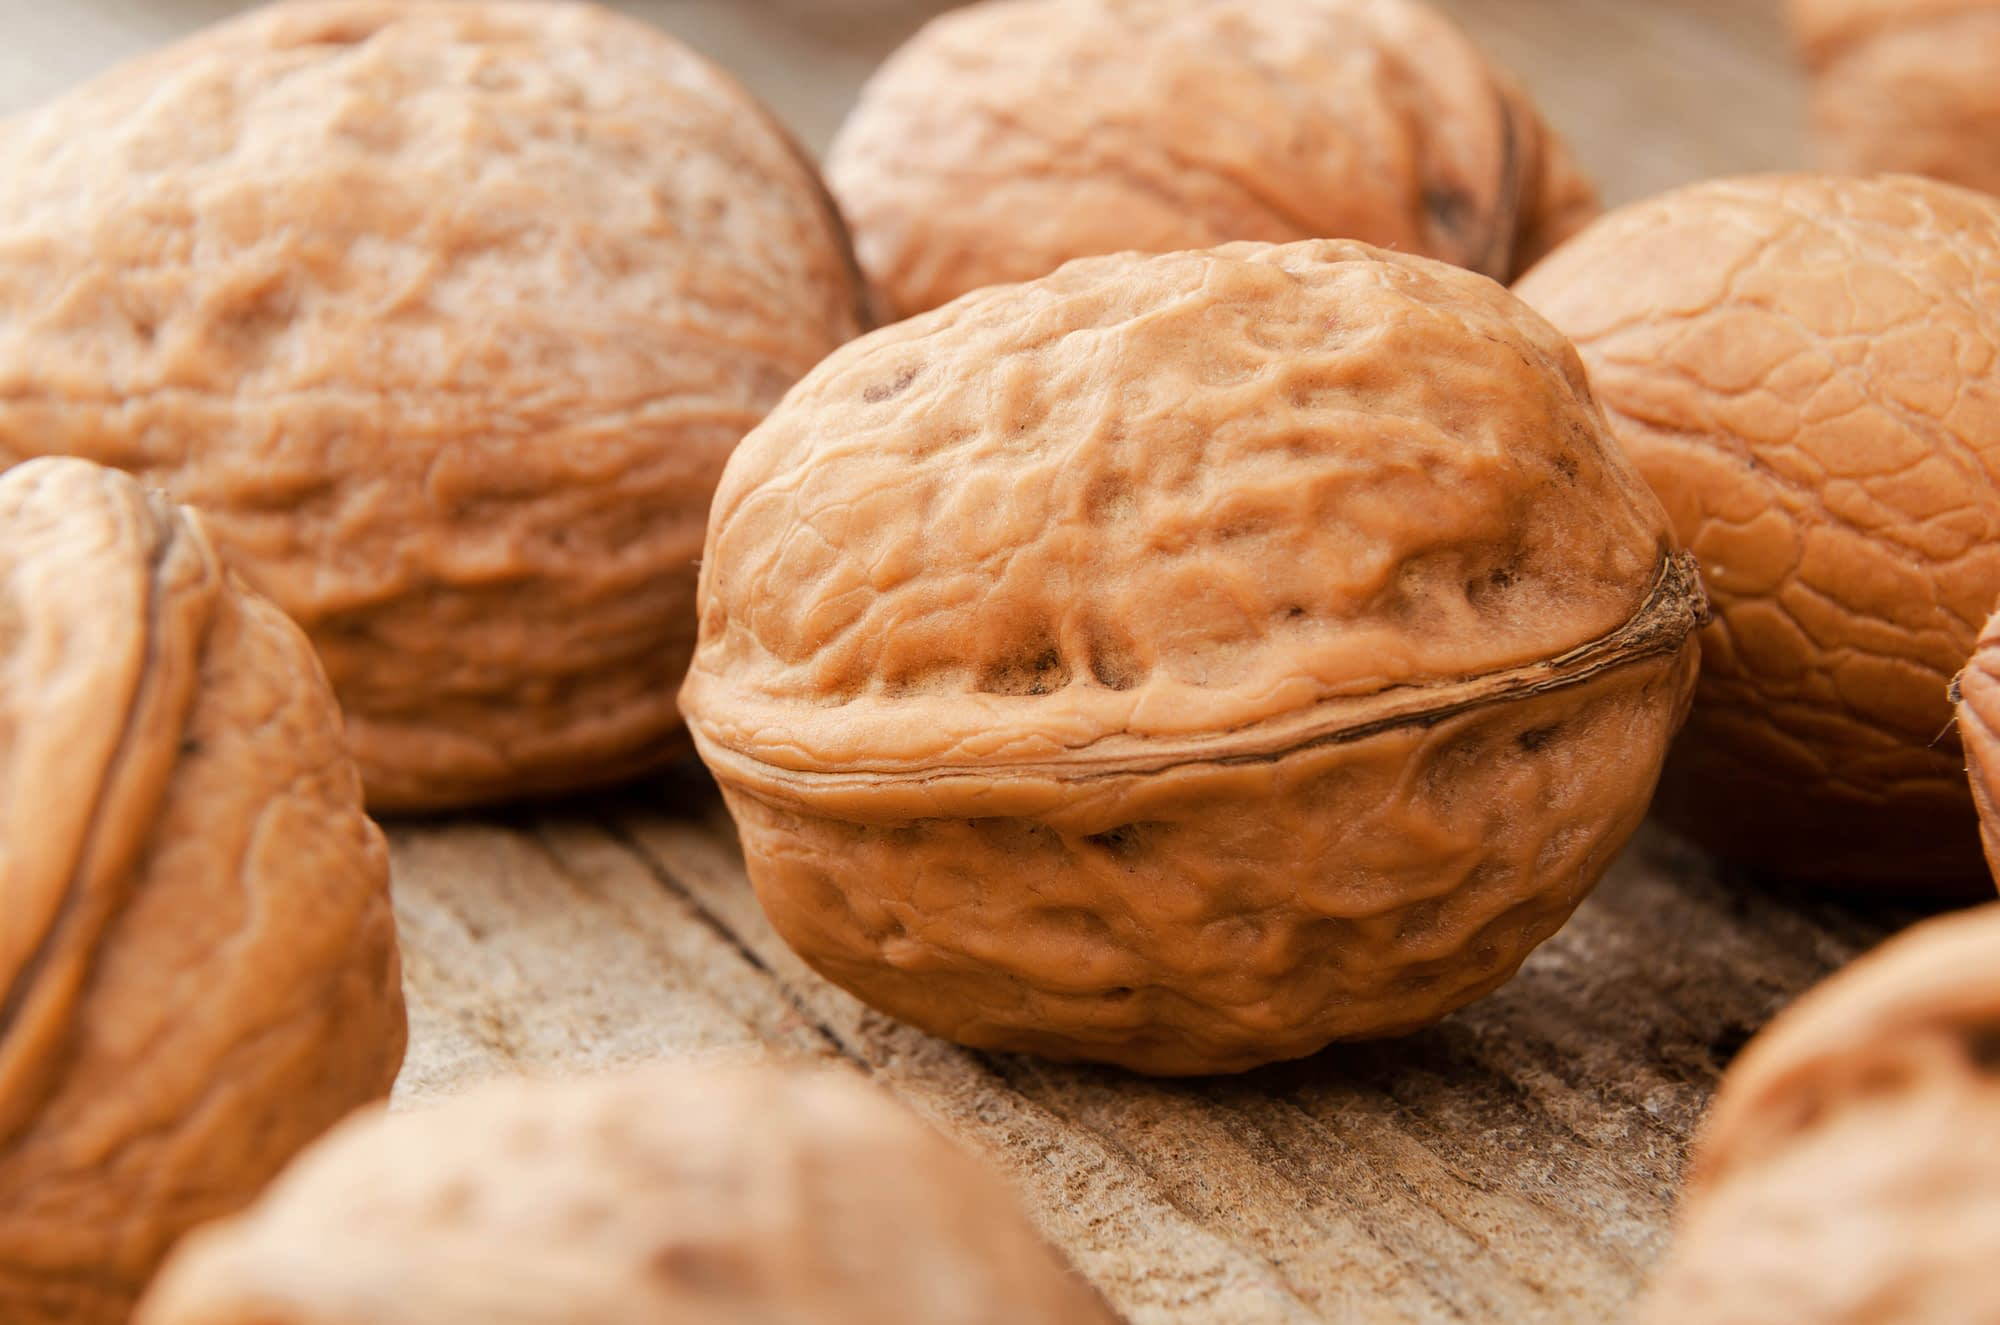 Close up of English Walnuts on a wooden table.